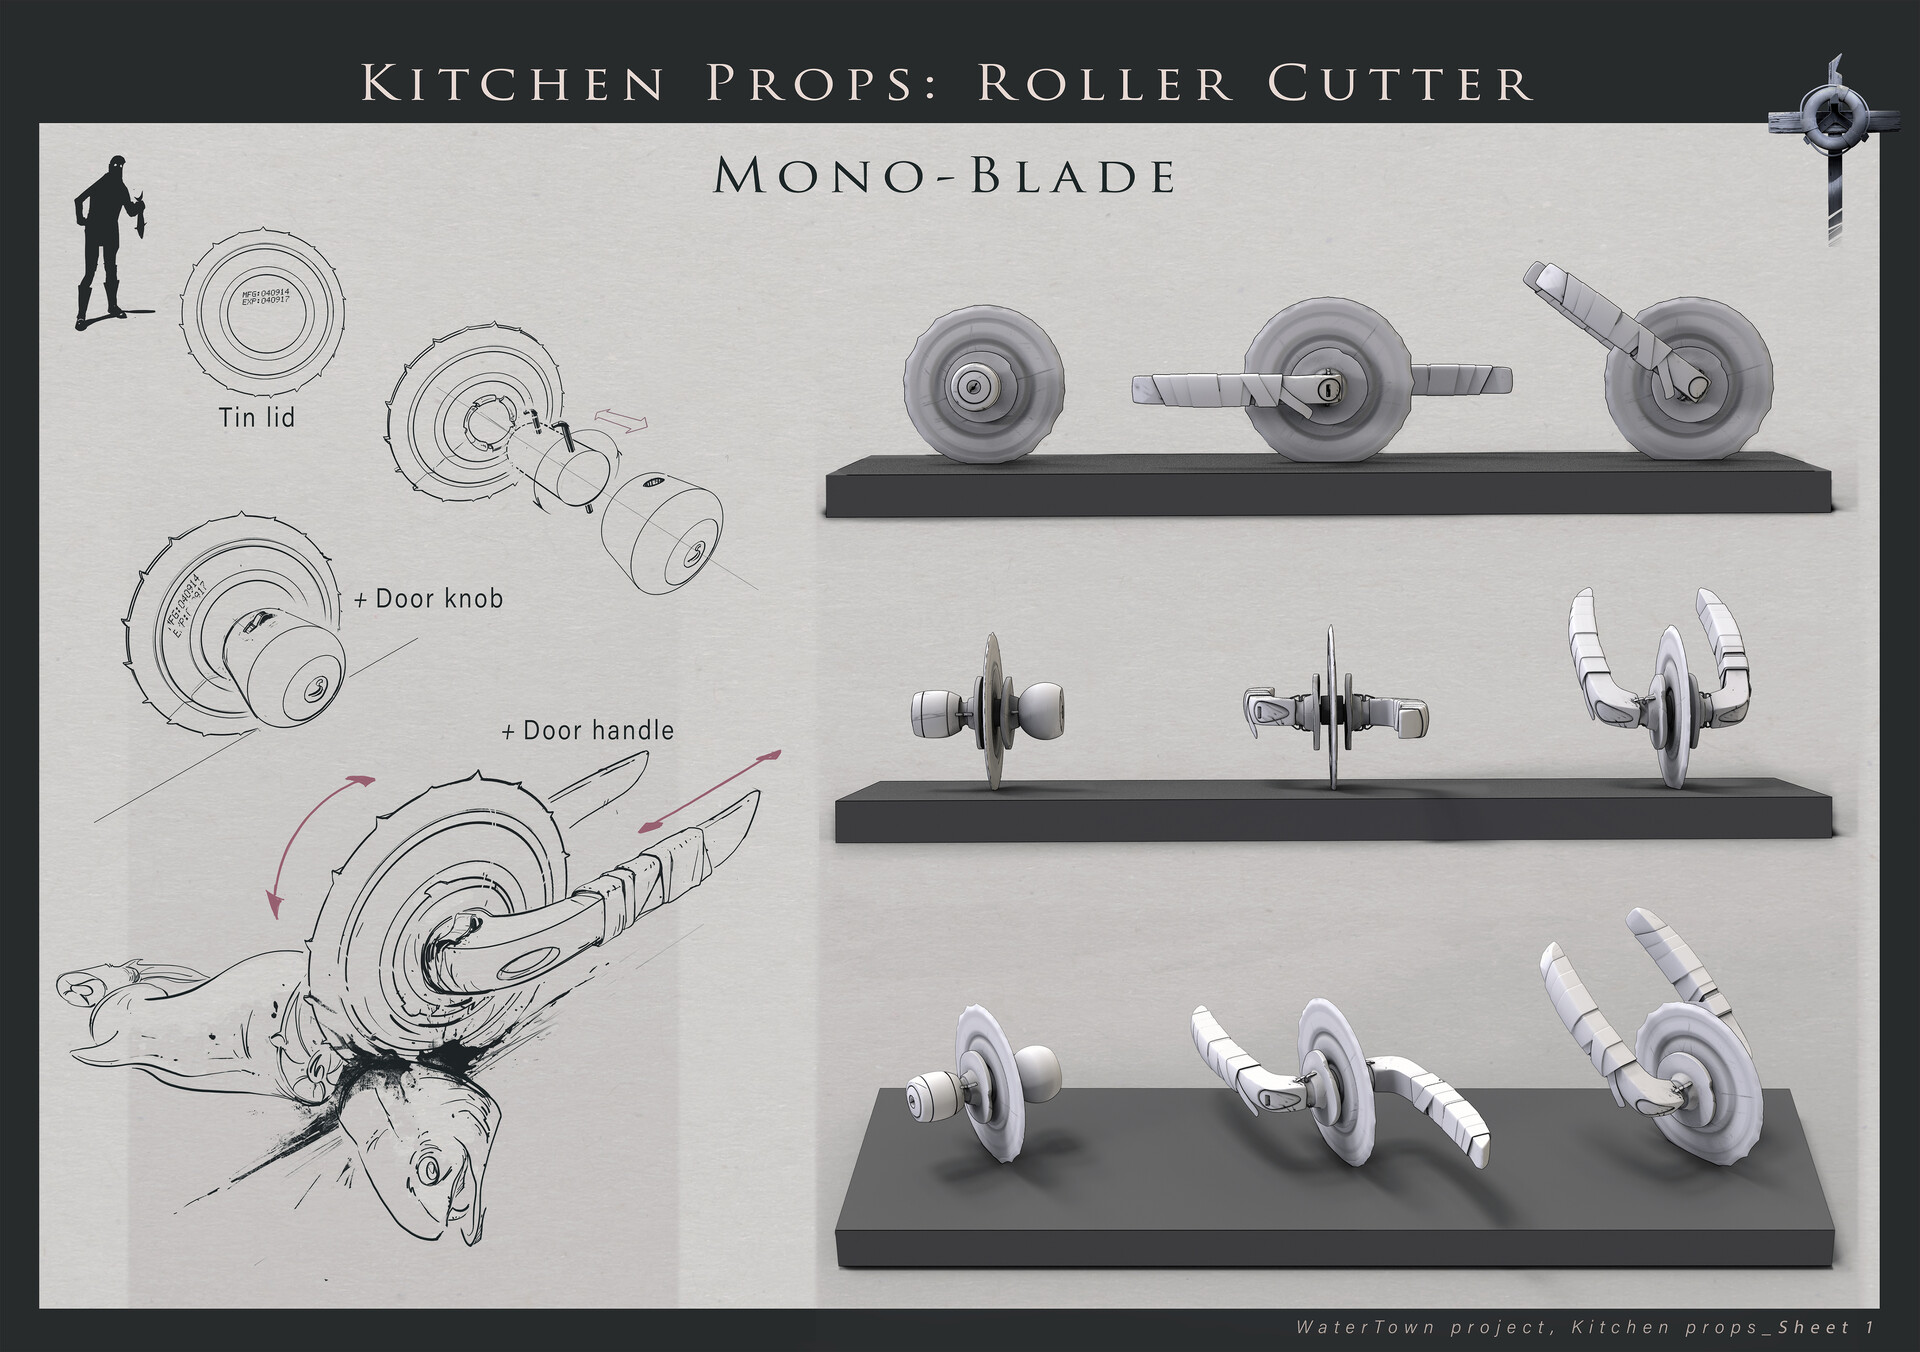 arash-razavi-01-props-kitchen-roller1